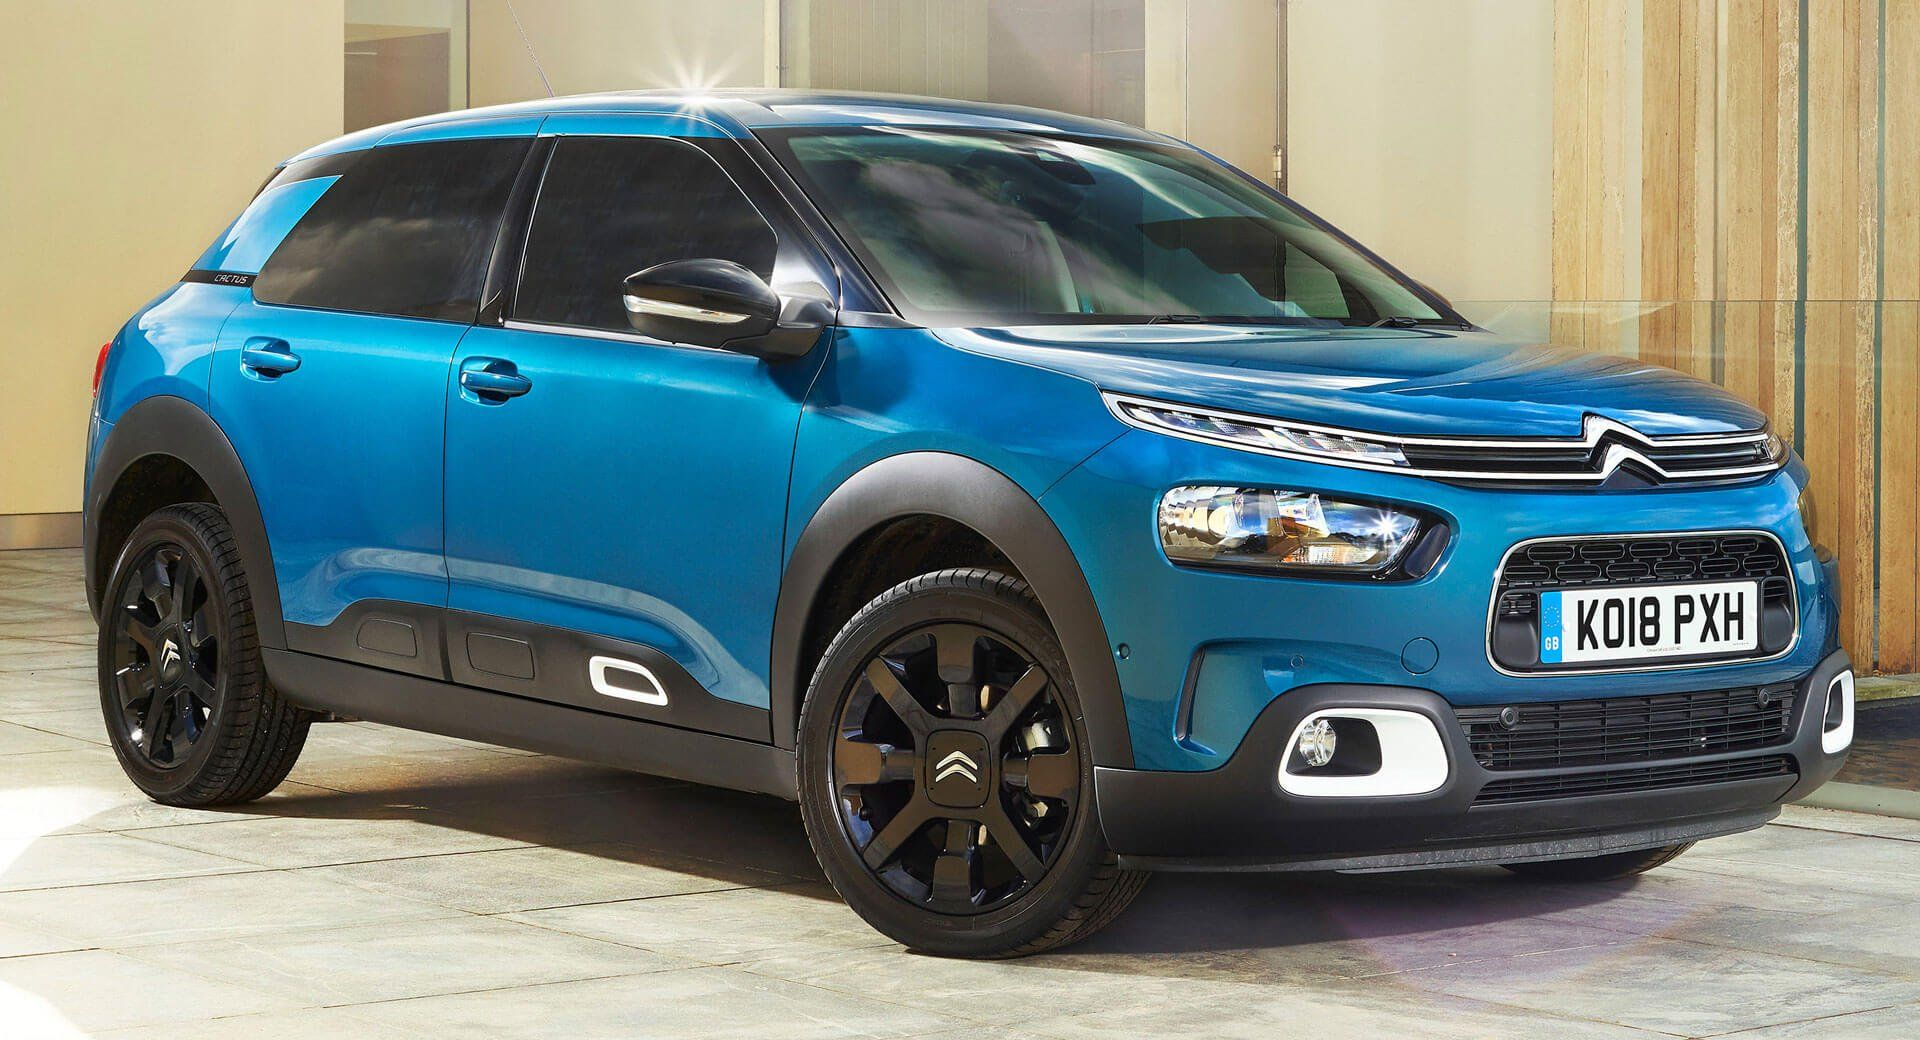 Next Citroen C4 Cactus Expected In 2020 With Battery Electric Option Carscoops